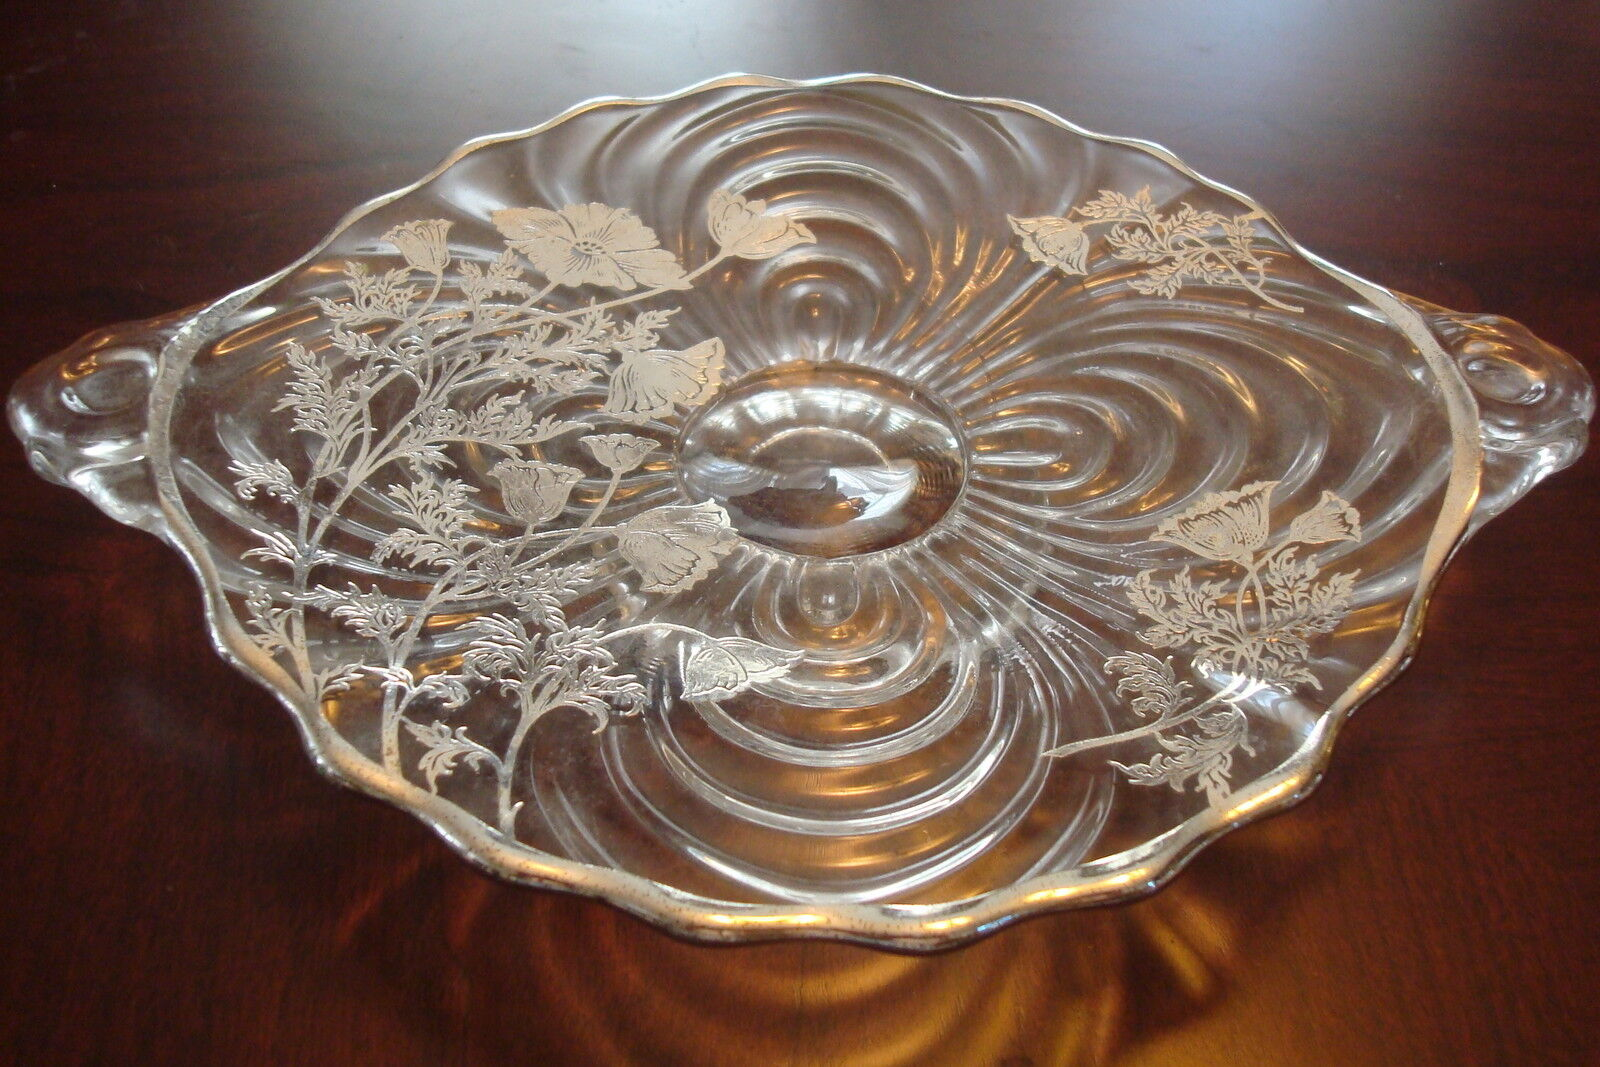 Glass Footed Cake Plate with silver etched flowers[10-14] & Glass Footed Cake Plate with silver etched flowers[10-14] | eBay